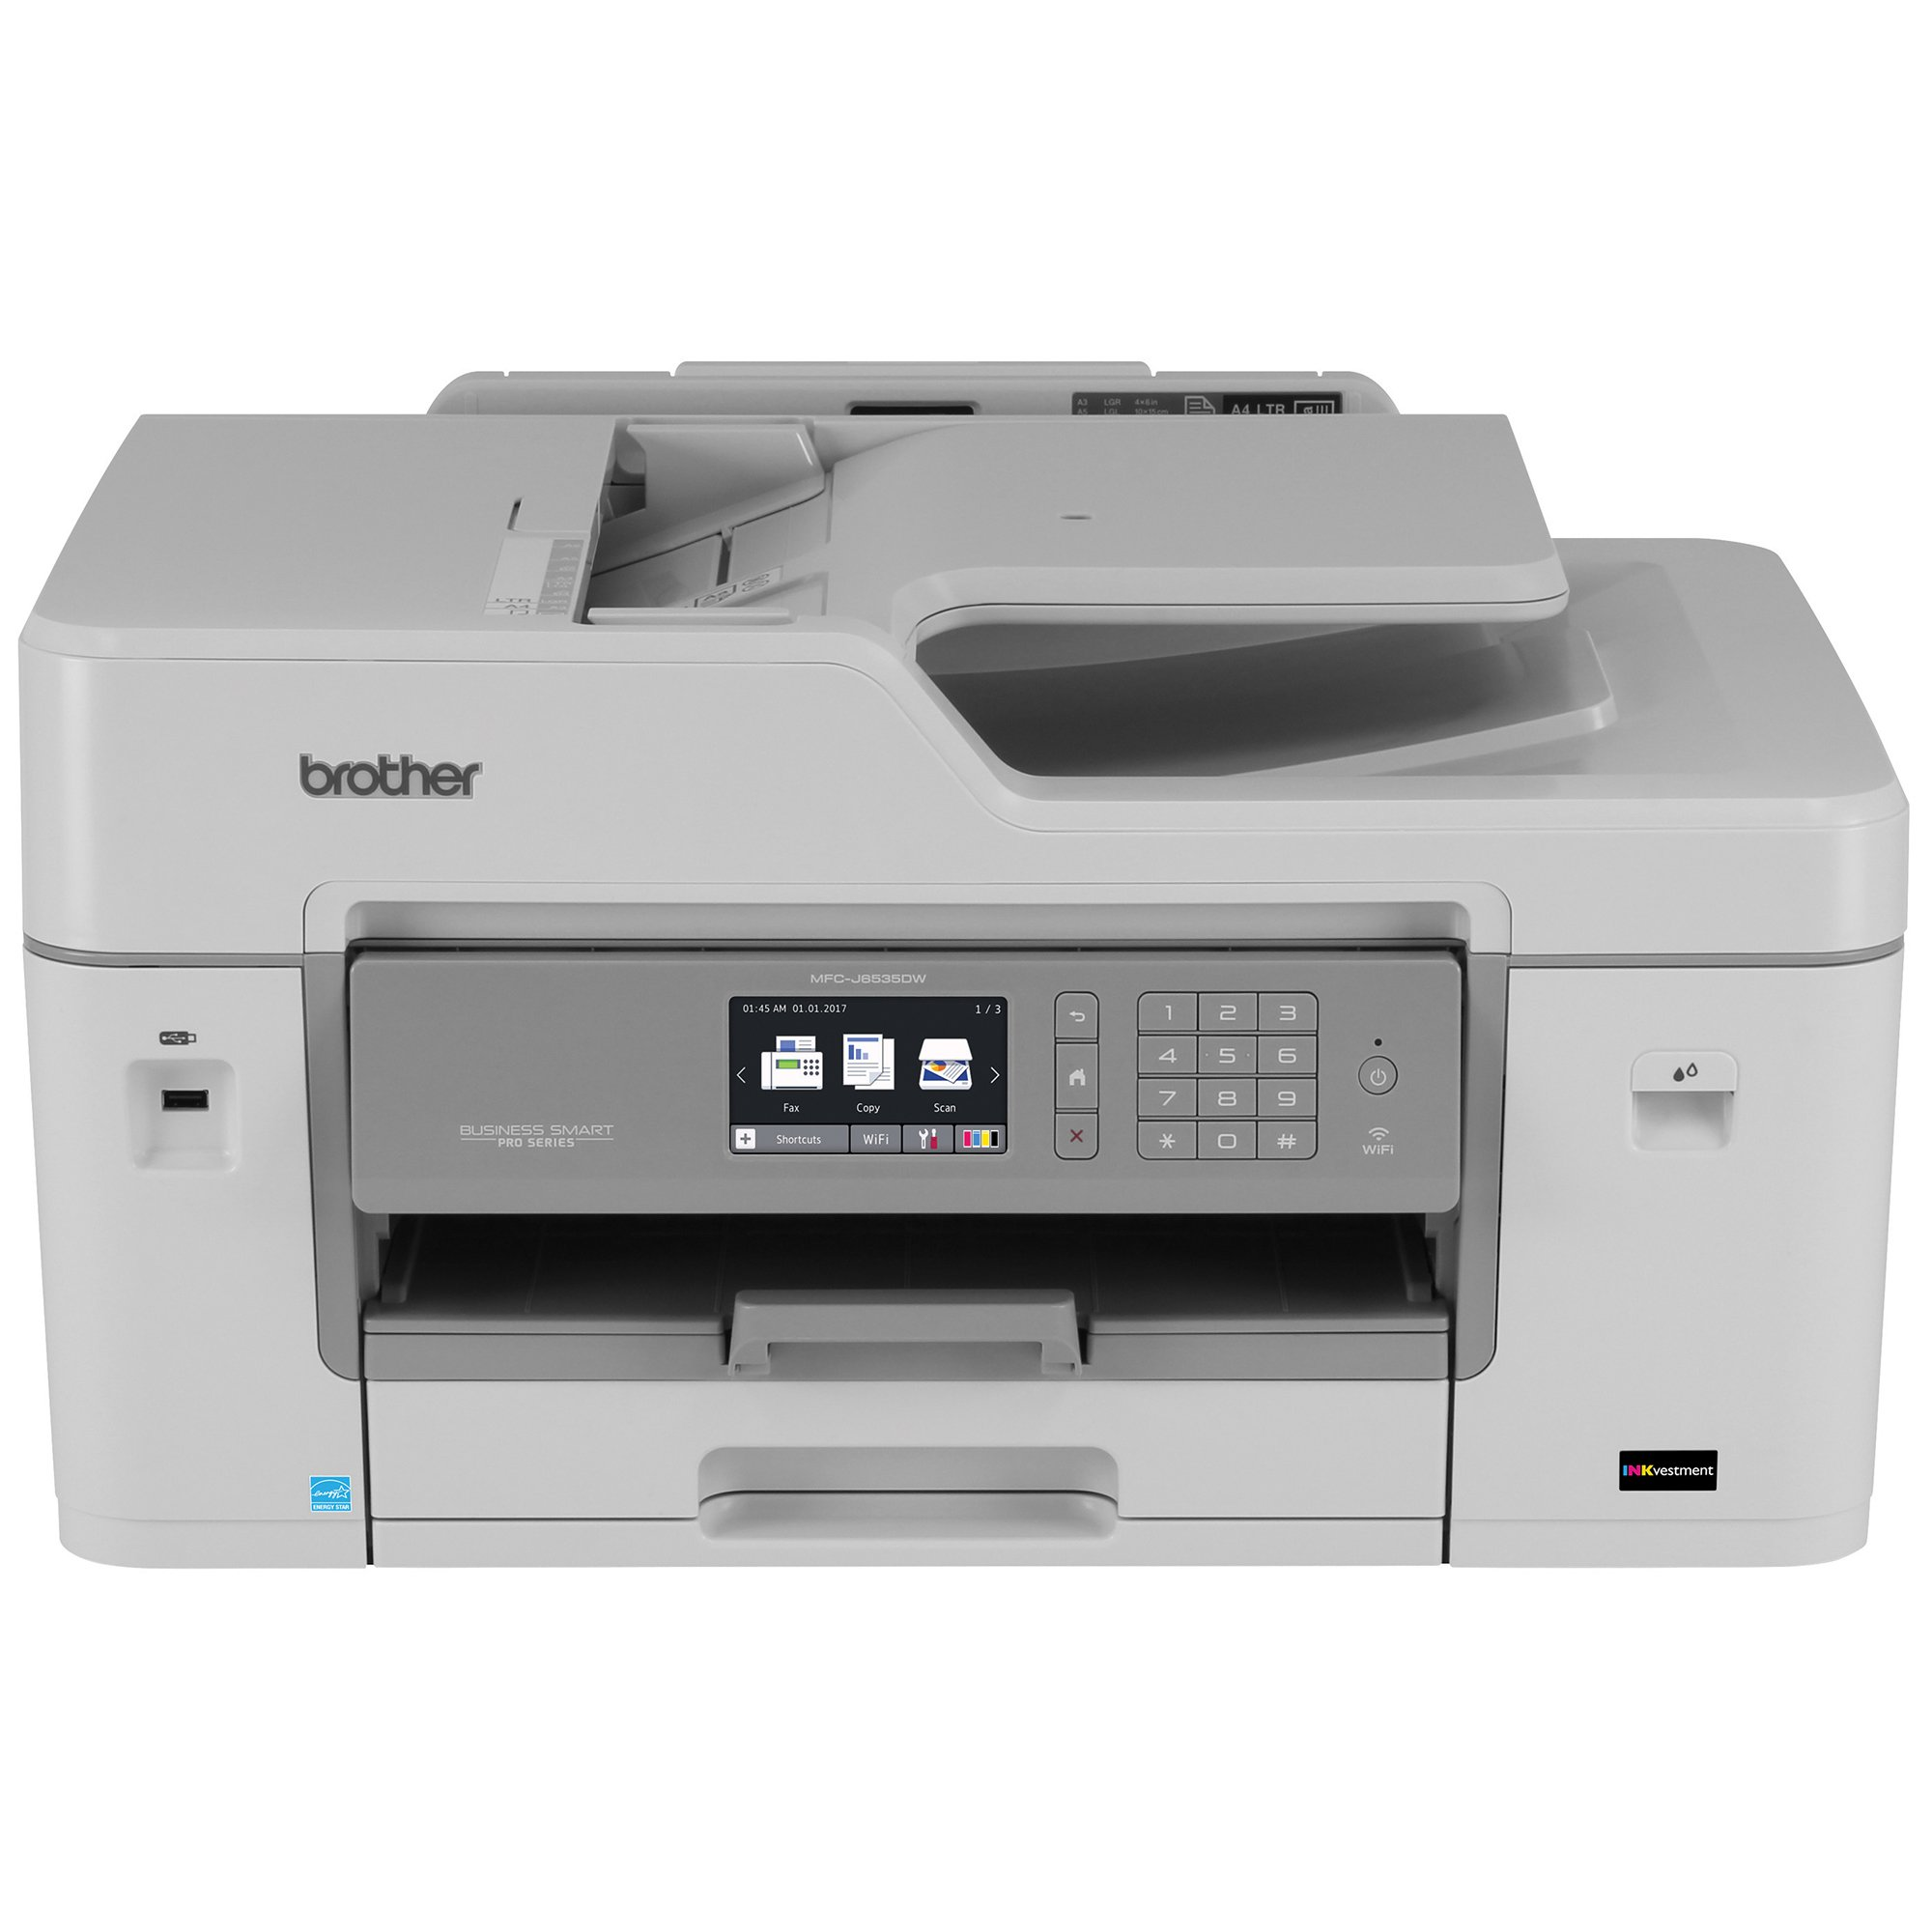 Brother MFCJ6535DW Inkjet All-in-One Color Printer, Wireless, Duplex, and Mobile Printing, Amazon Dash Replenishment Enabled